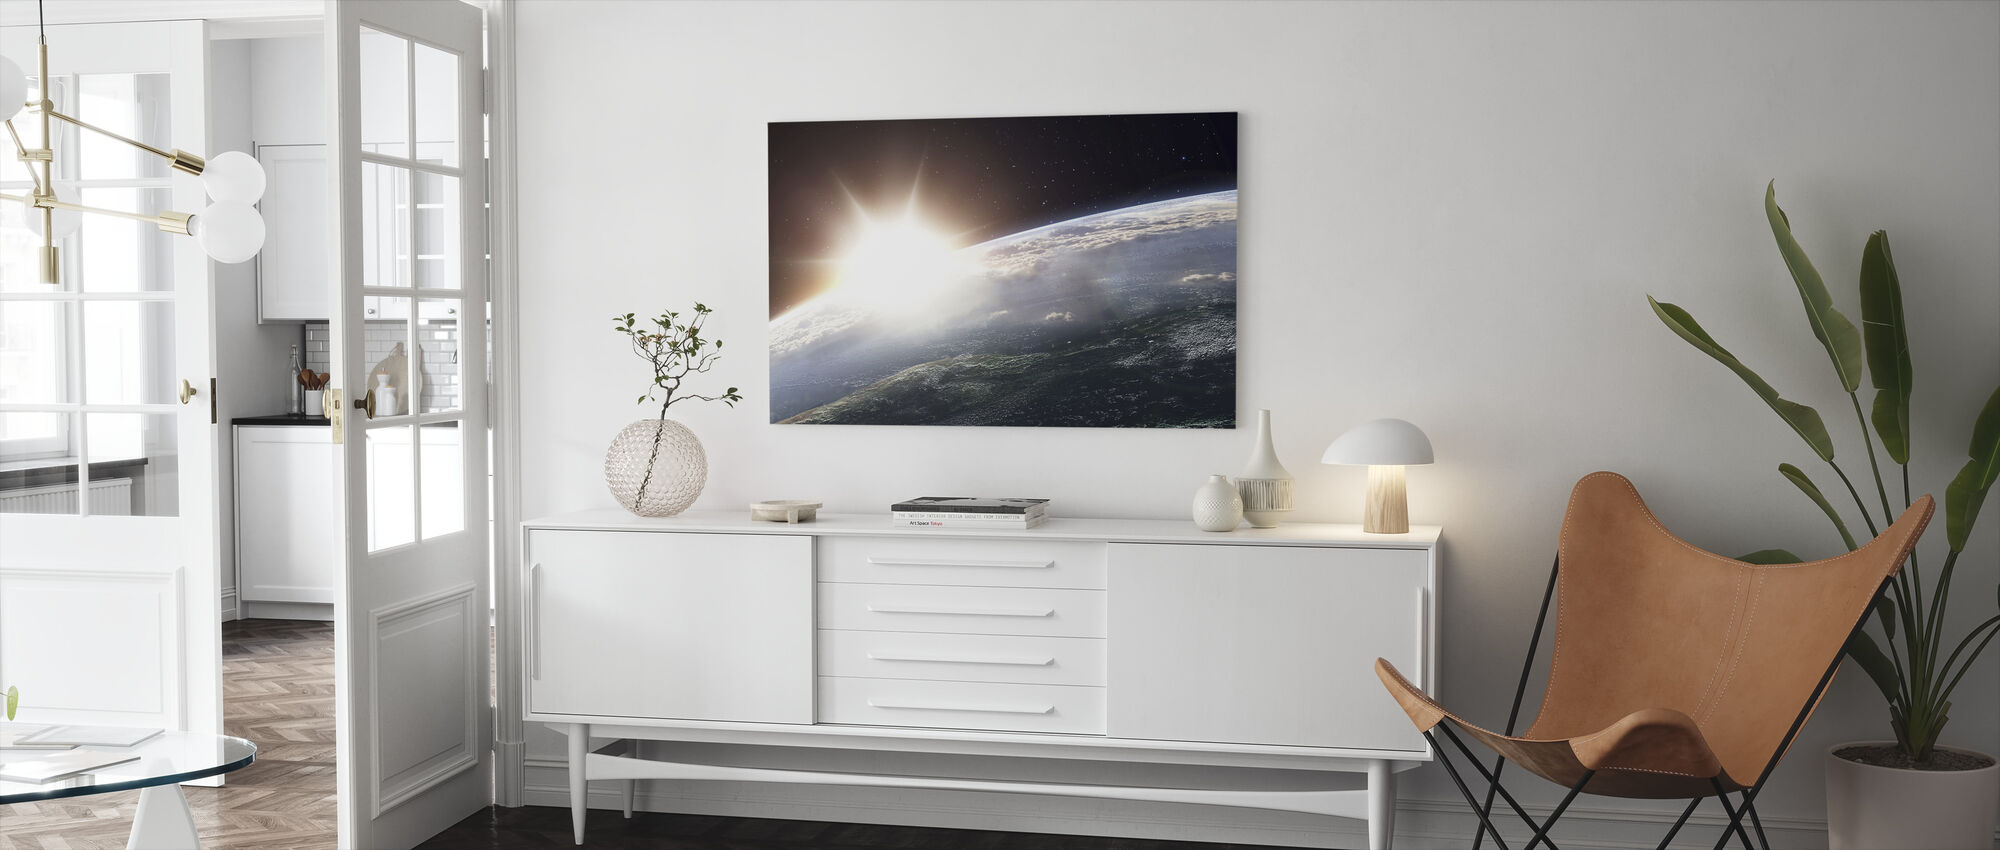 Sun over Earth - Canvas print - Living Room